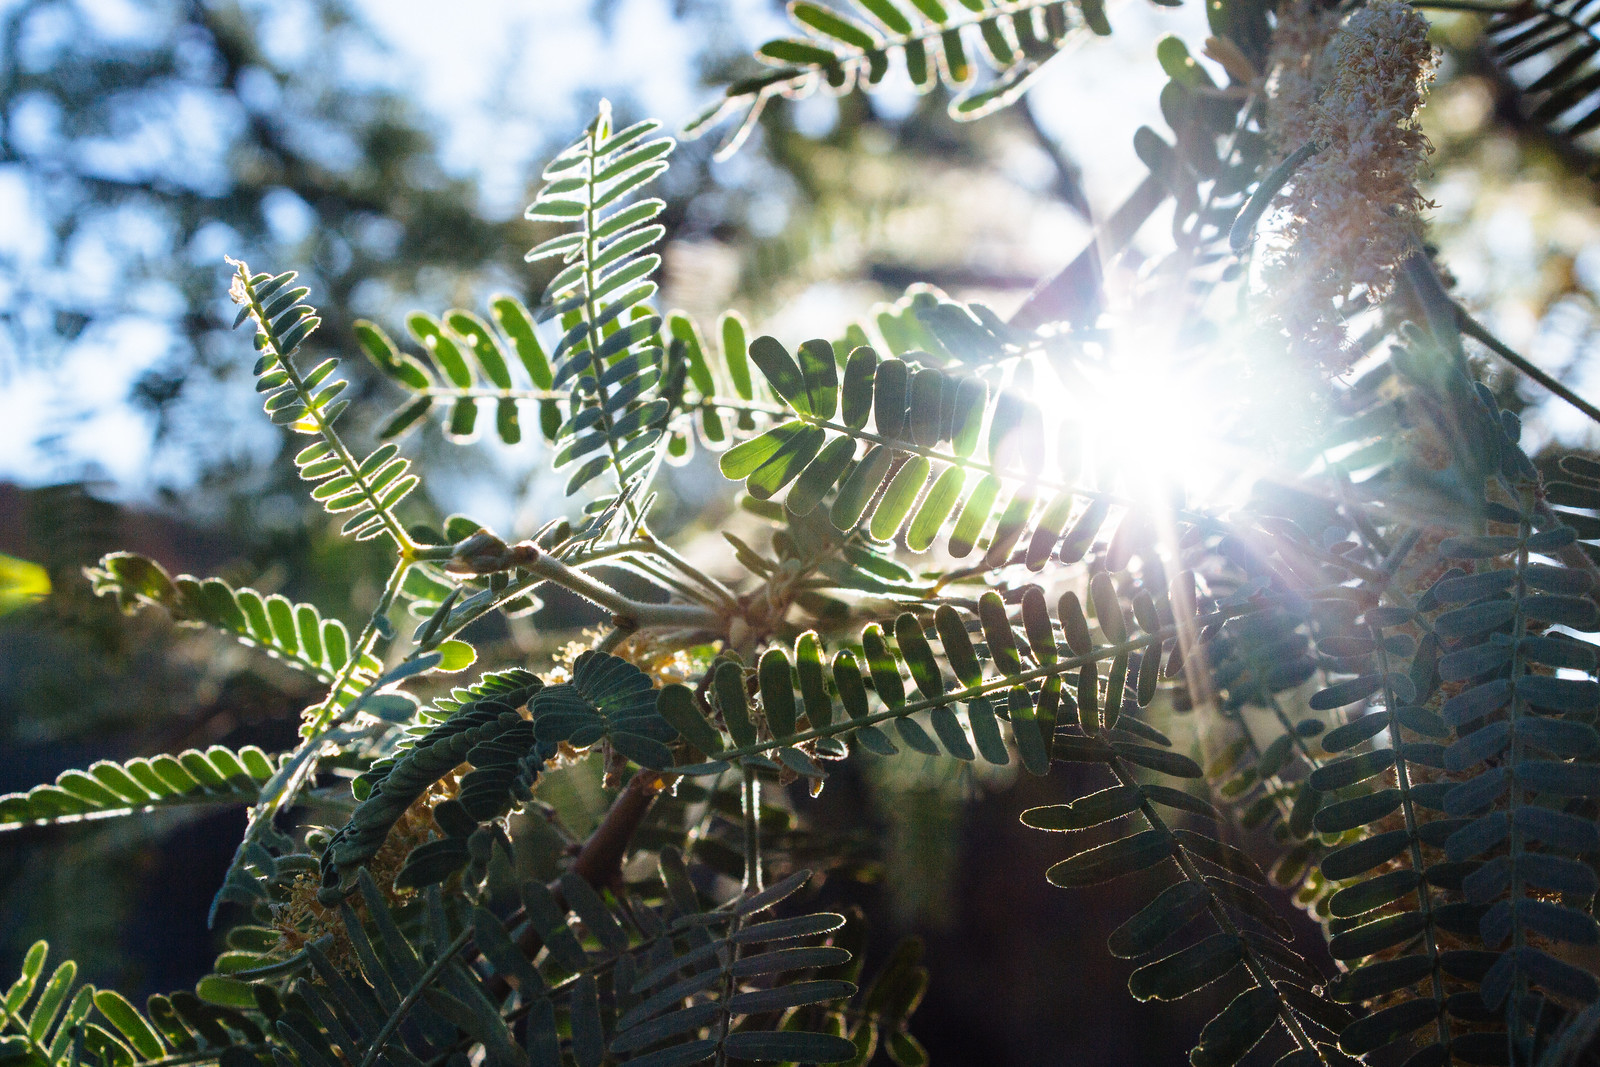 Sunlight peeking through pinnate leaves of a mesquite tree